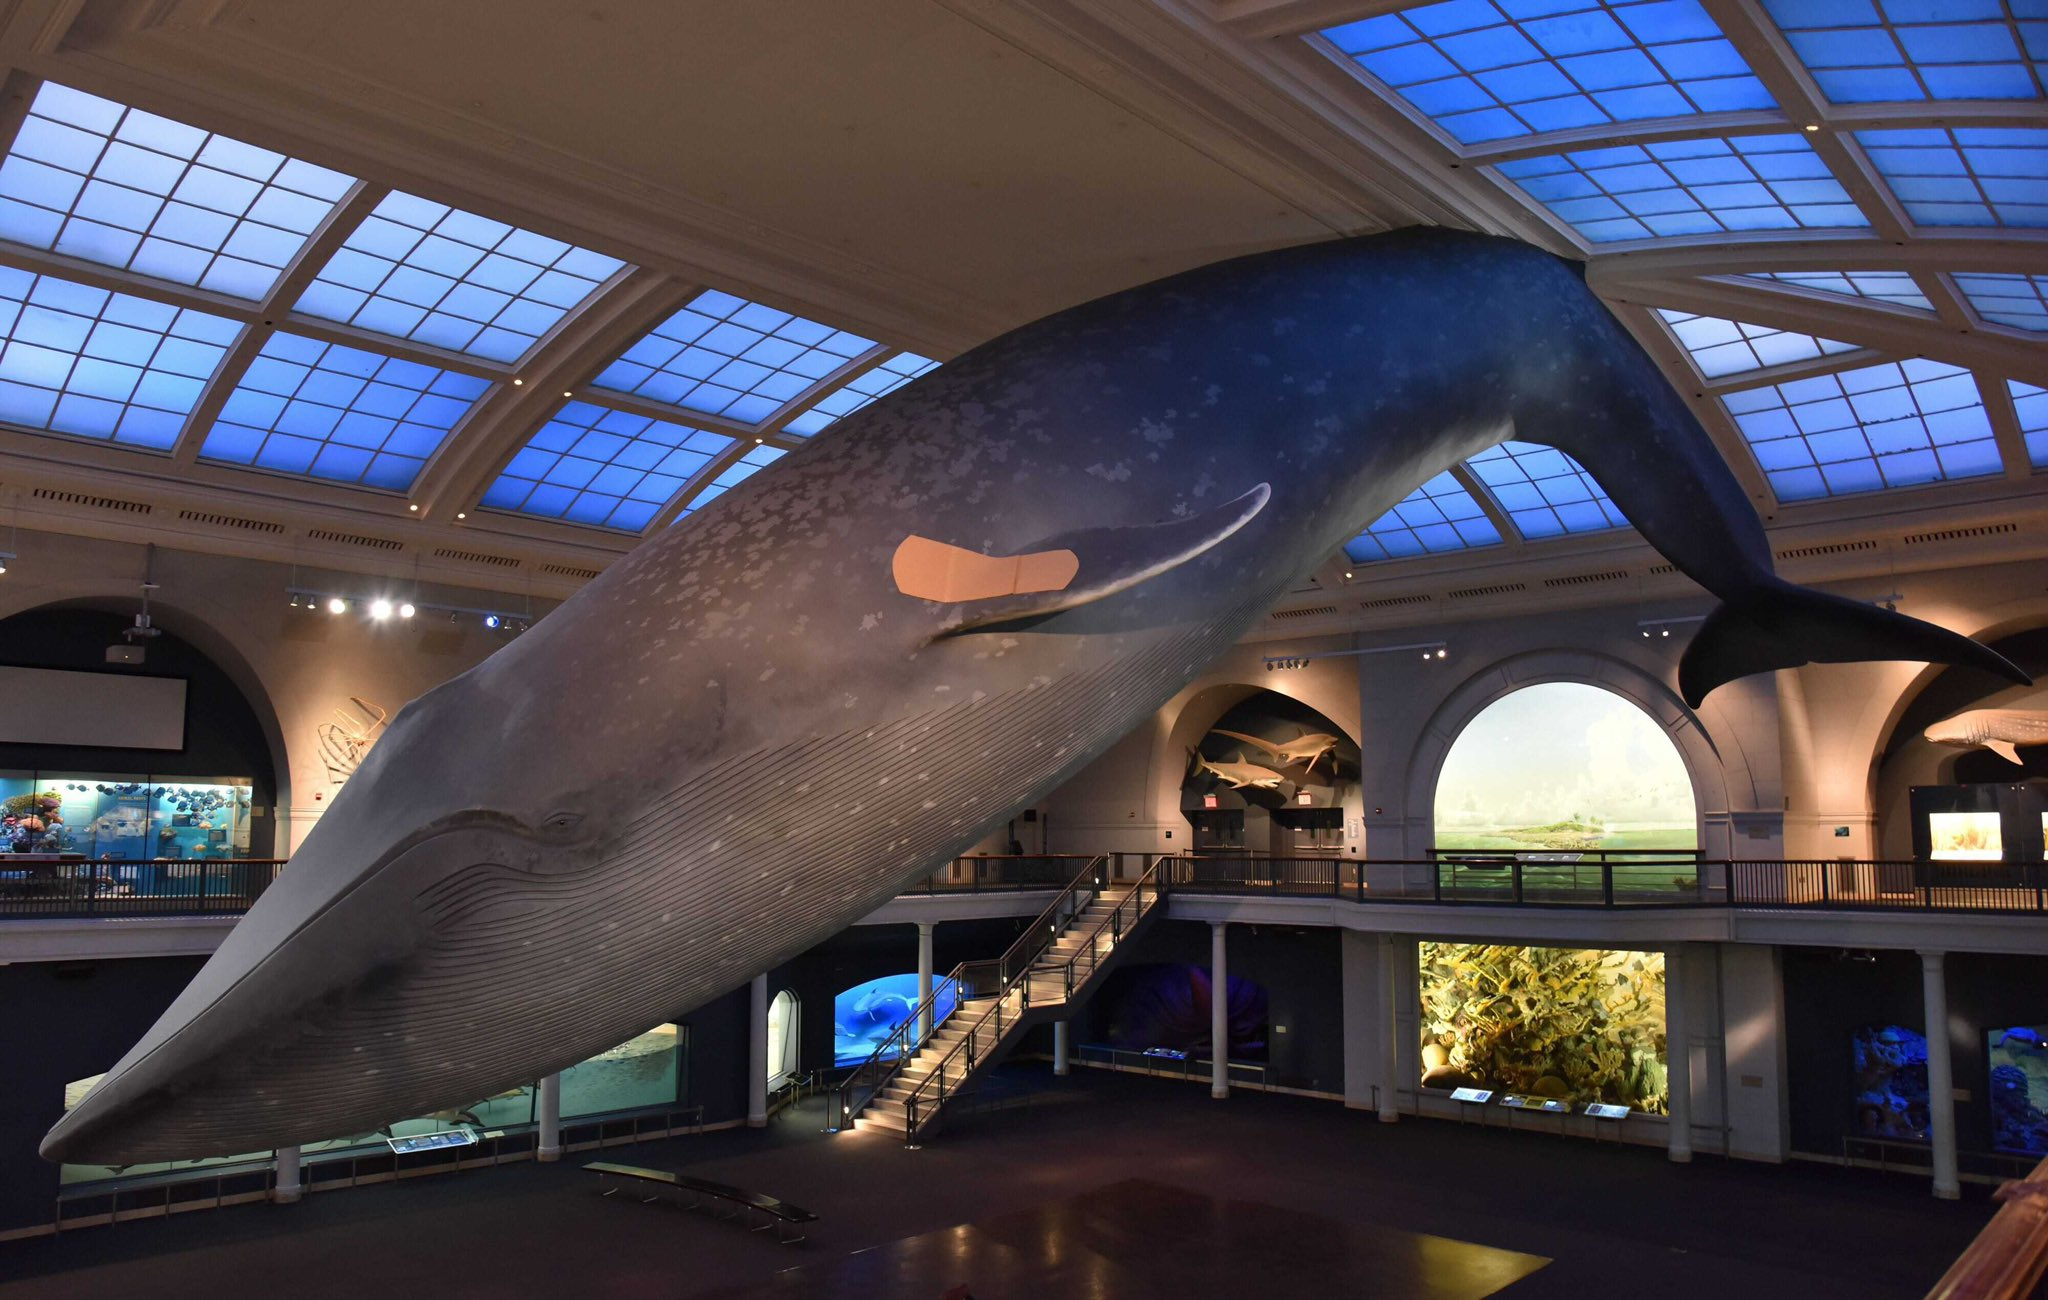 New Yorkers Can Now Get Vaccinated Under the Famous Blue Whale at the American Museum of Natural History | Artnet News